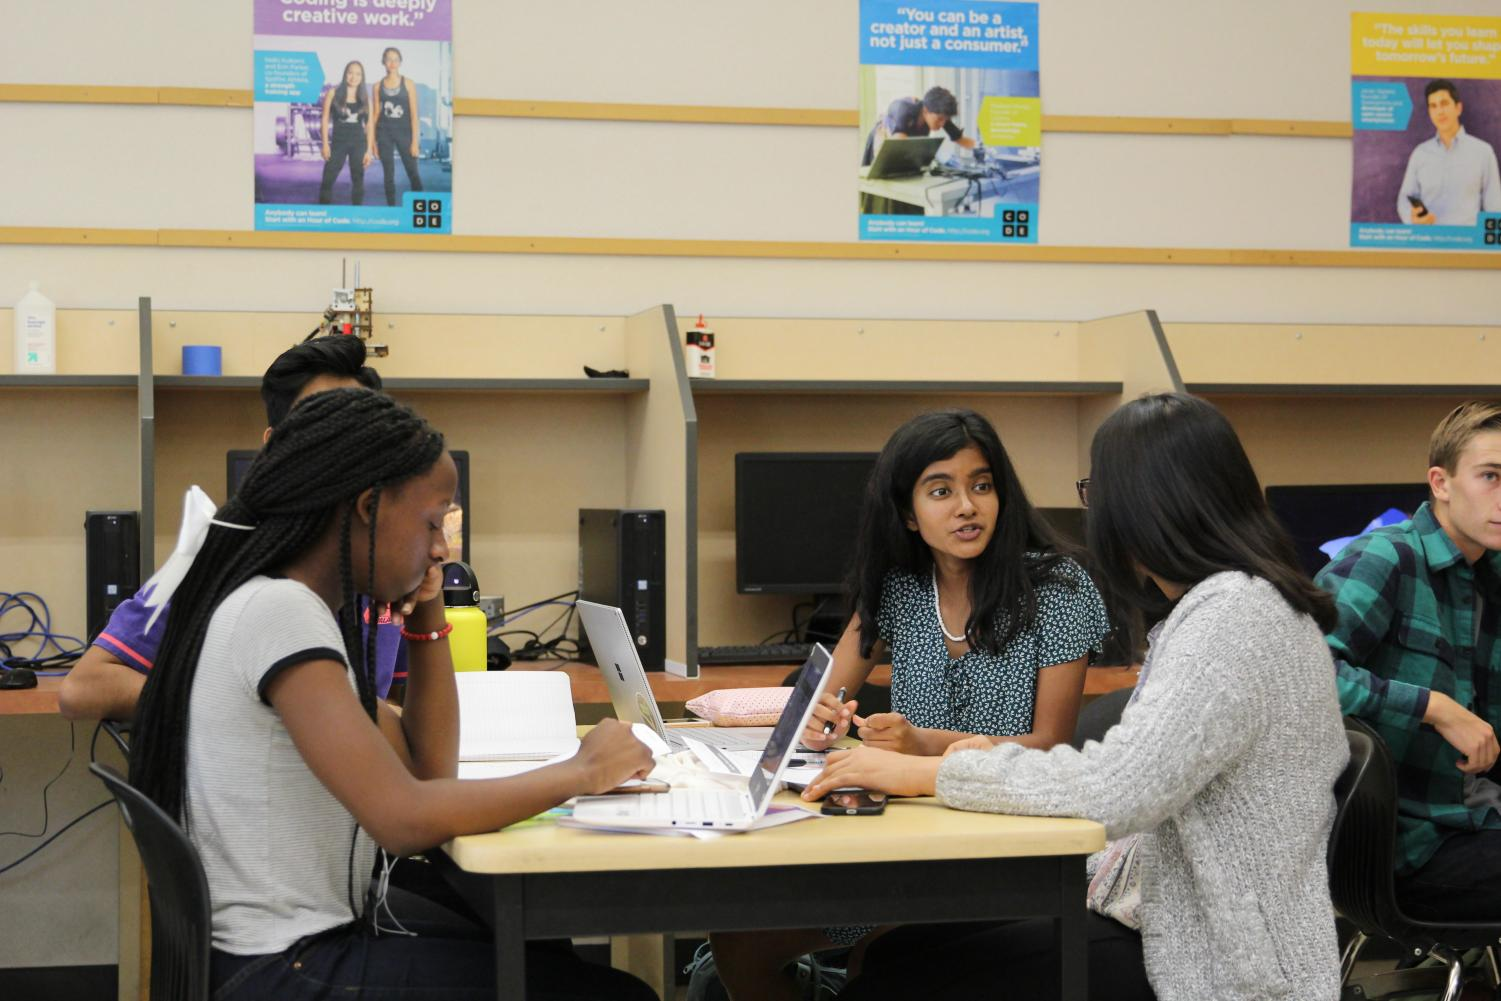 In Mr. Matt Strinden's eighth period AP Computer Science Principles class, Ifetayo-Michaela Spencer, Shawn Singh, Ashvika Nair and Ryela Gill discuss the ways to solve IP and Internet related problems as part of the assignment. Photo by Sofiia Malushkina.